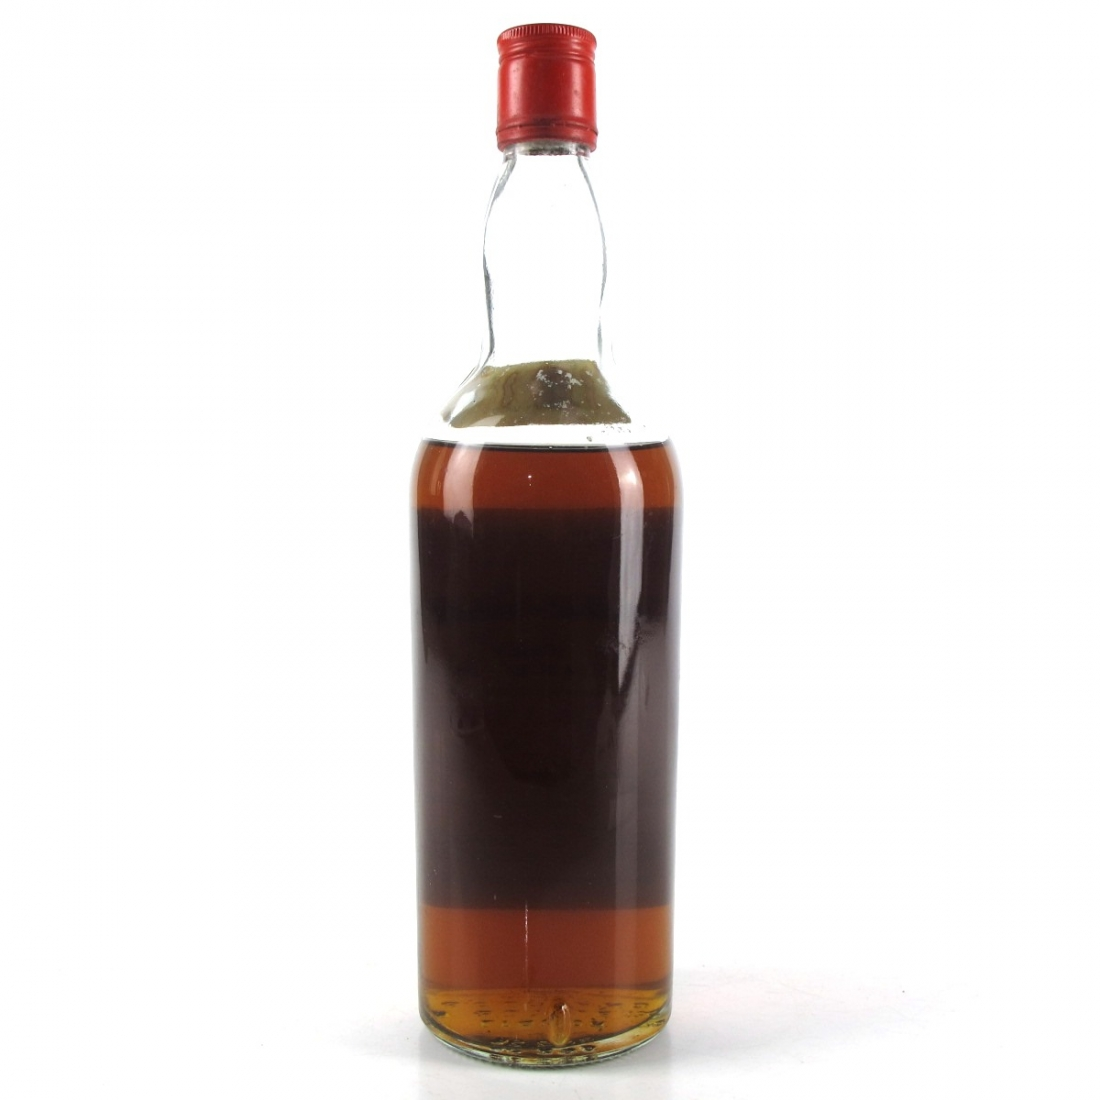 Macallan 1938 Gordon and MacPhail 35 Year Old / Pinerolo Import